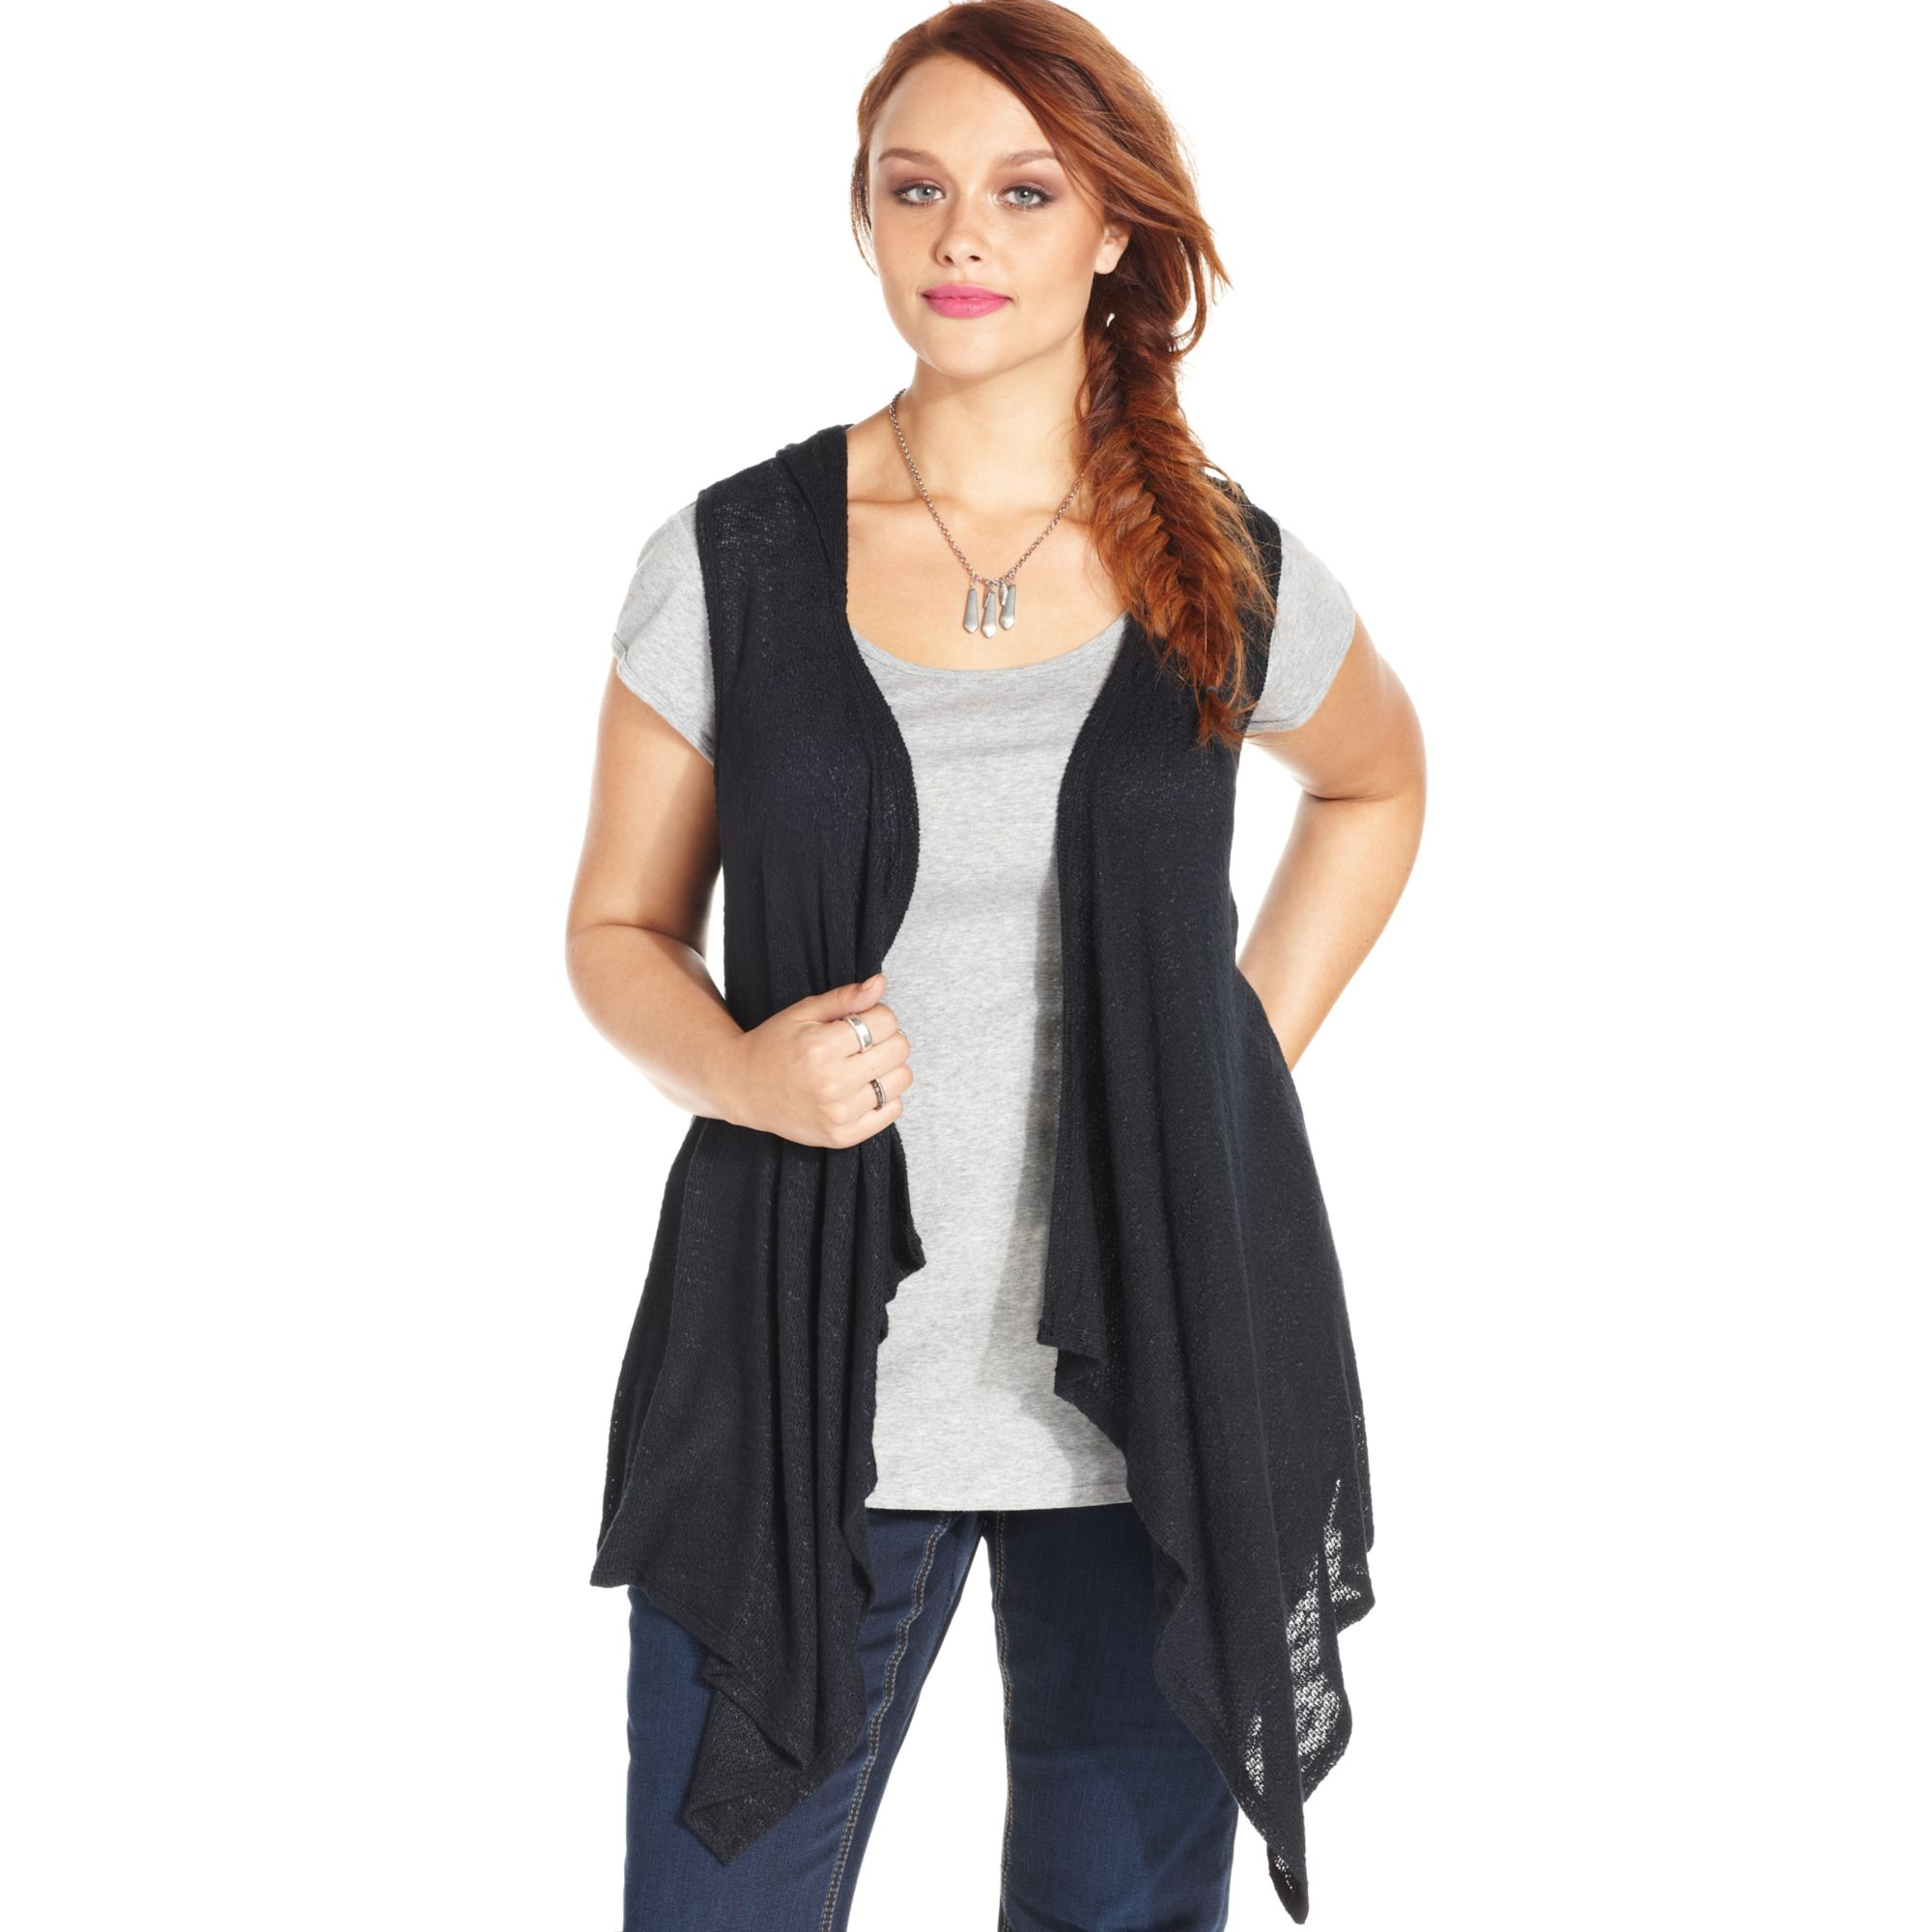 Shop the full line of plus size women's clothing at Kohl's. We offer all the brands and styles of plus size clothing you love! For your everyday wardrobe, check out our selection of plus size cardigans.